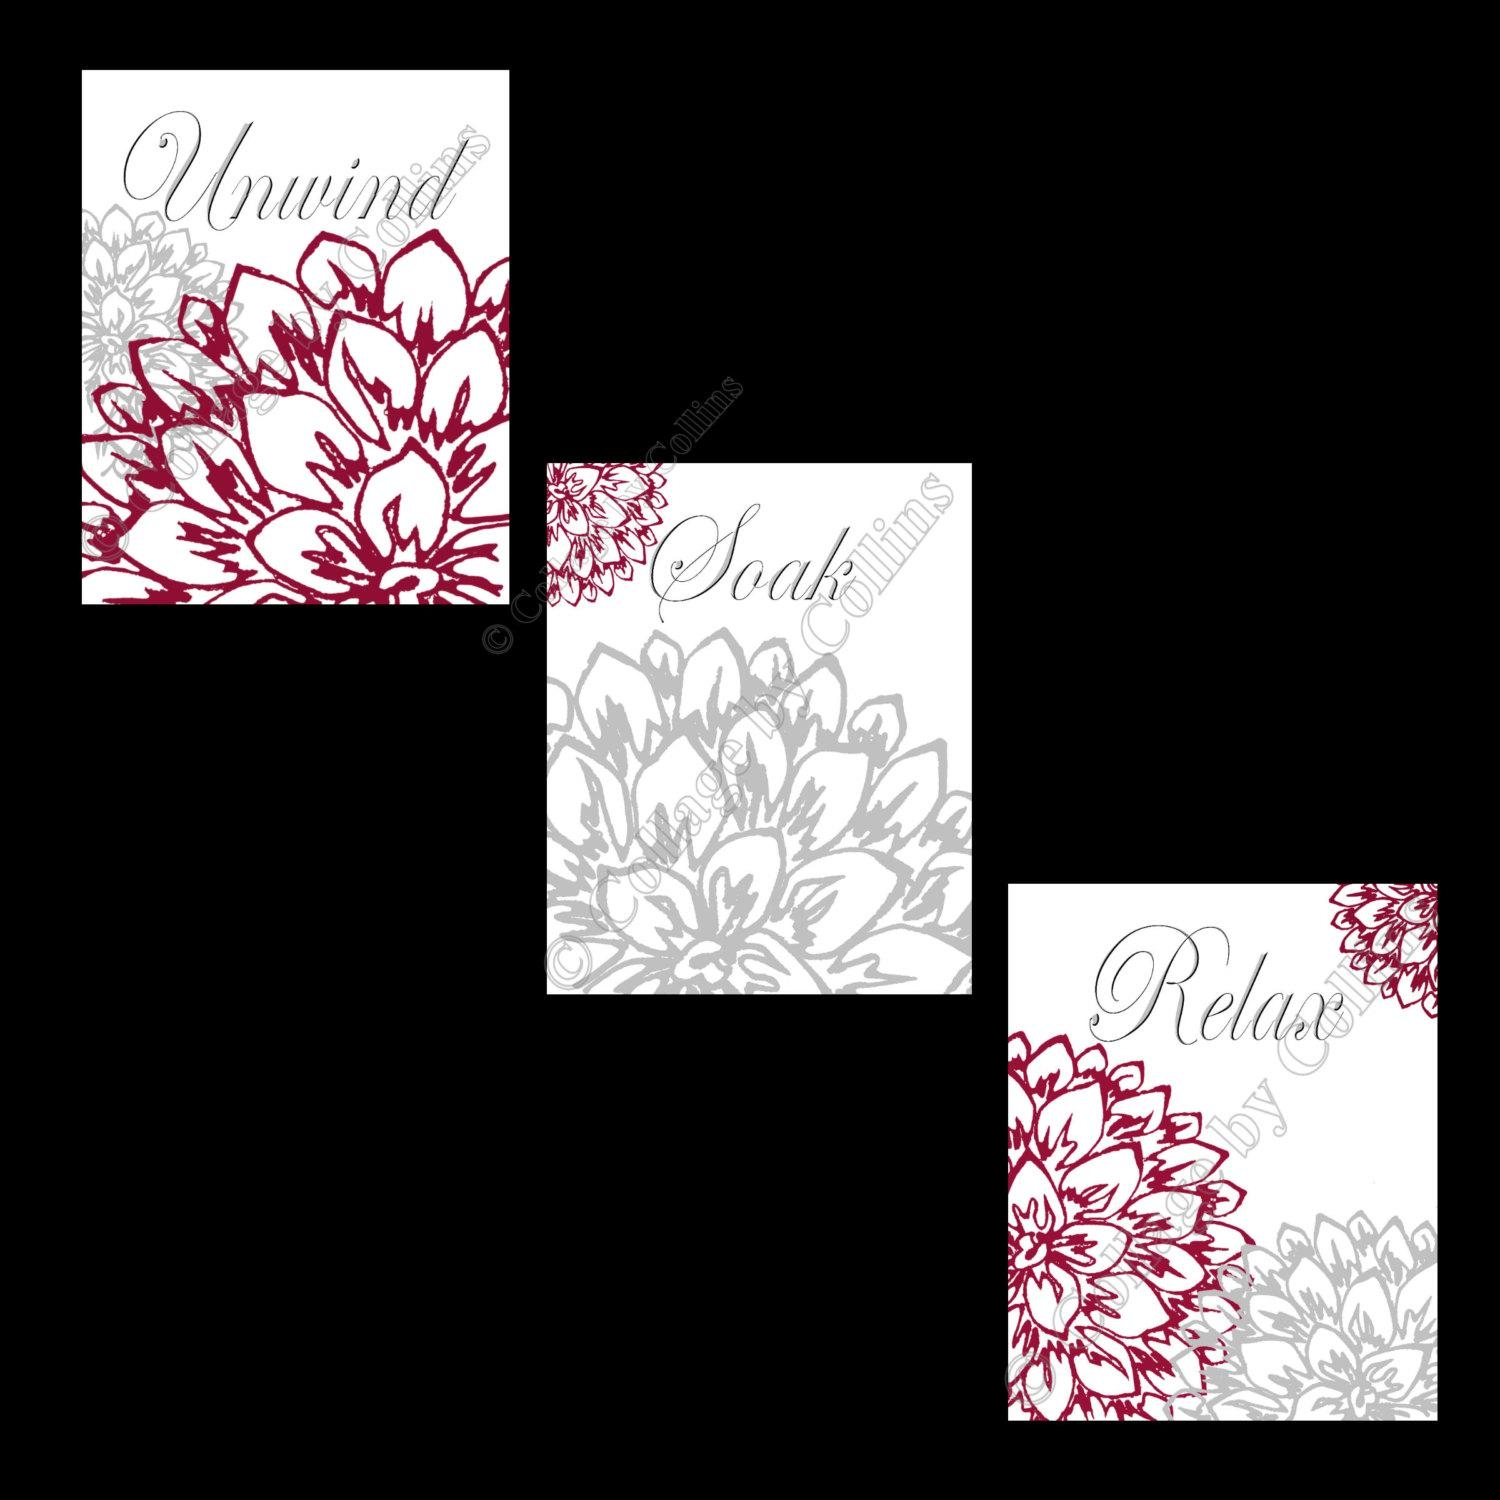 Floral Flower Gray And Burgundy Wall Art Prints Decor Bathroom With Burgundy Wall Art (View 10 of 20)